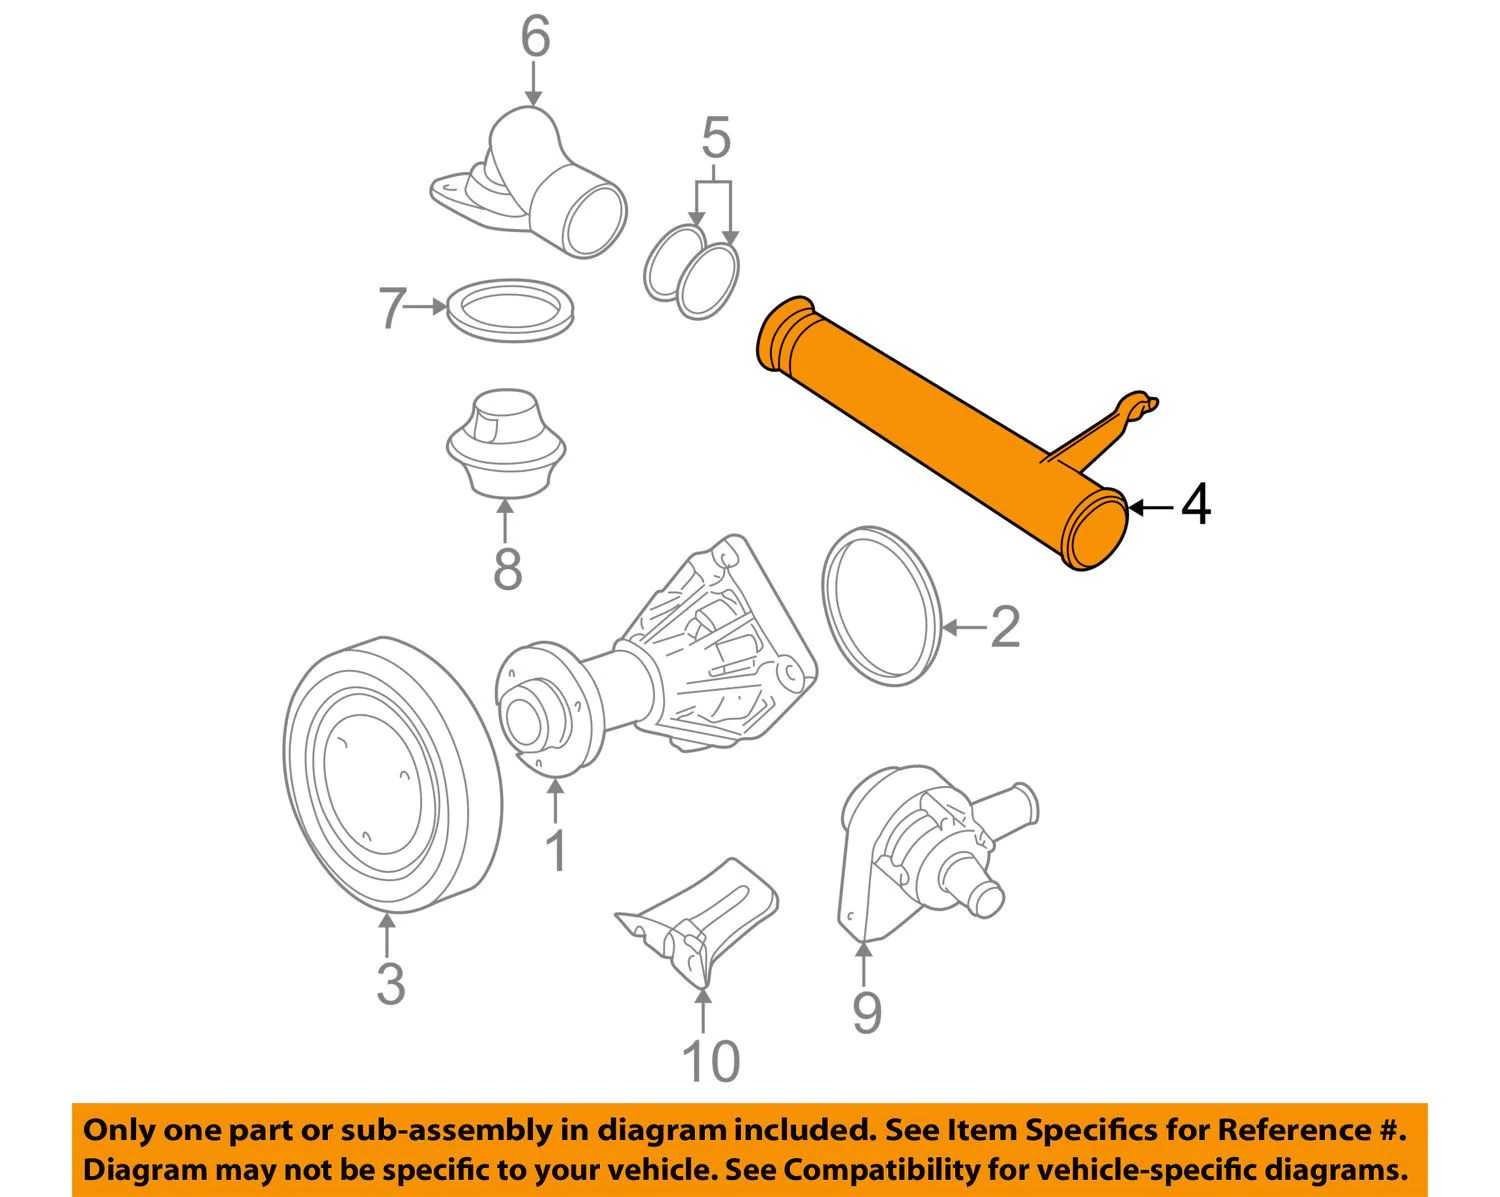 medium resolution of  cadillac catera cts saturn vue l ls lw series thermostat housing tube